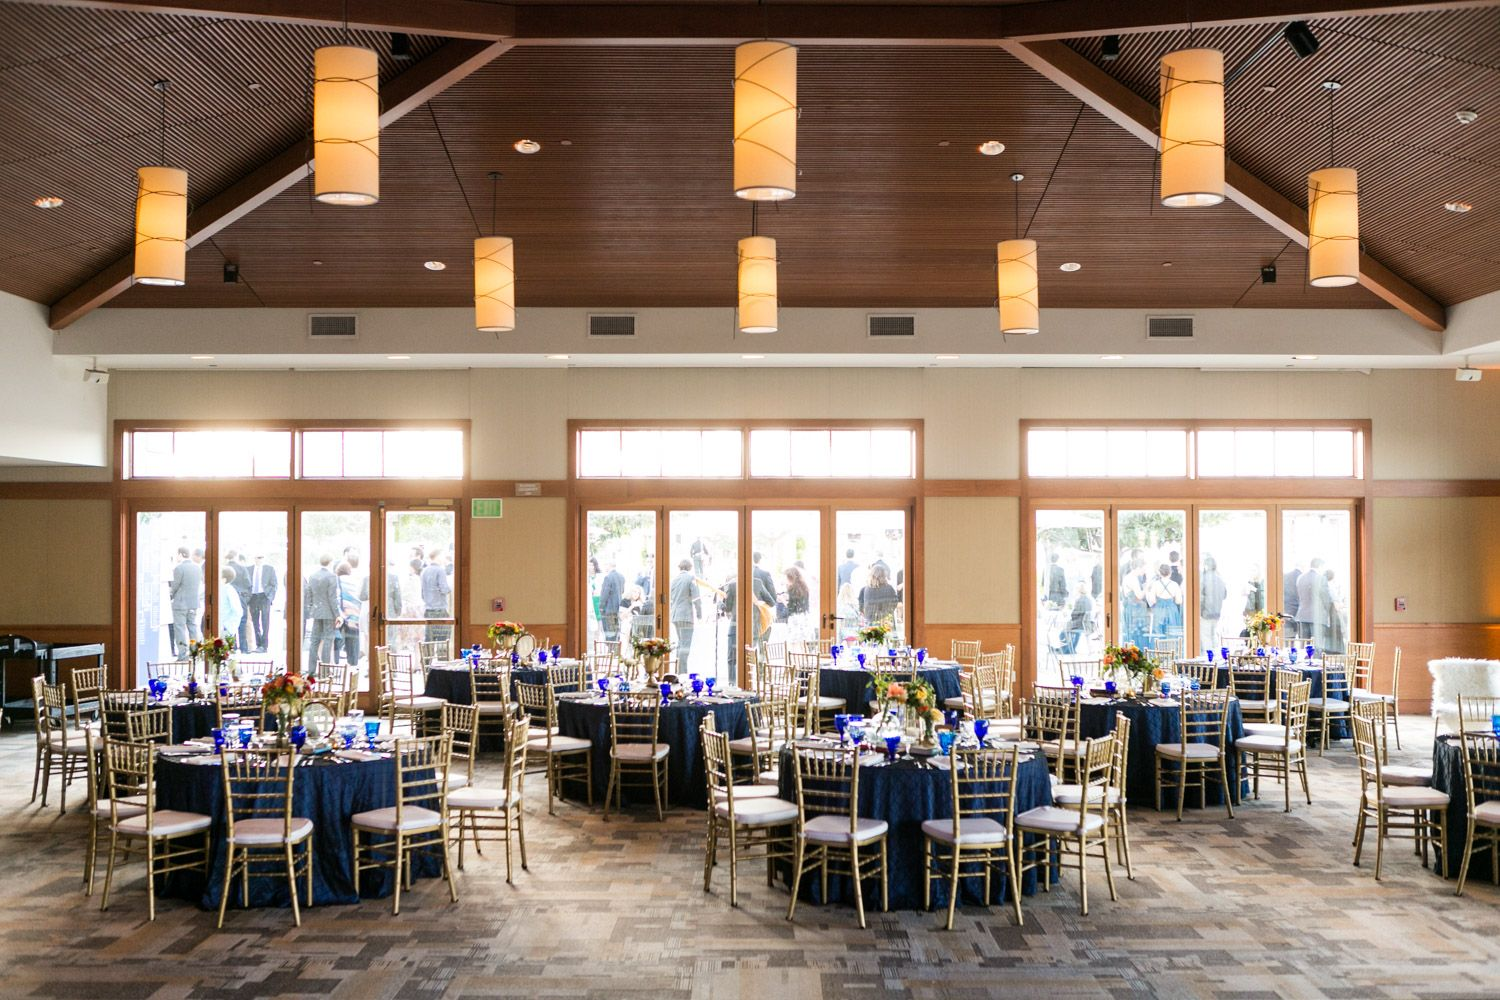 Coronado Community Center Wedding Reception By Coastyle Events Sophisticated Sports Vintage Themed Decor With Blue Red Yellow And Peach Green